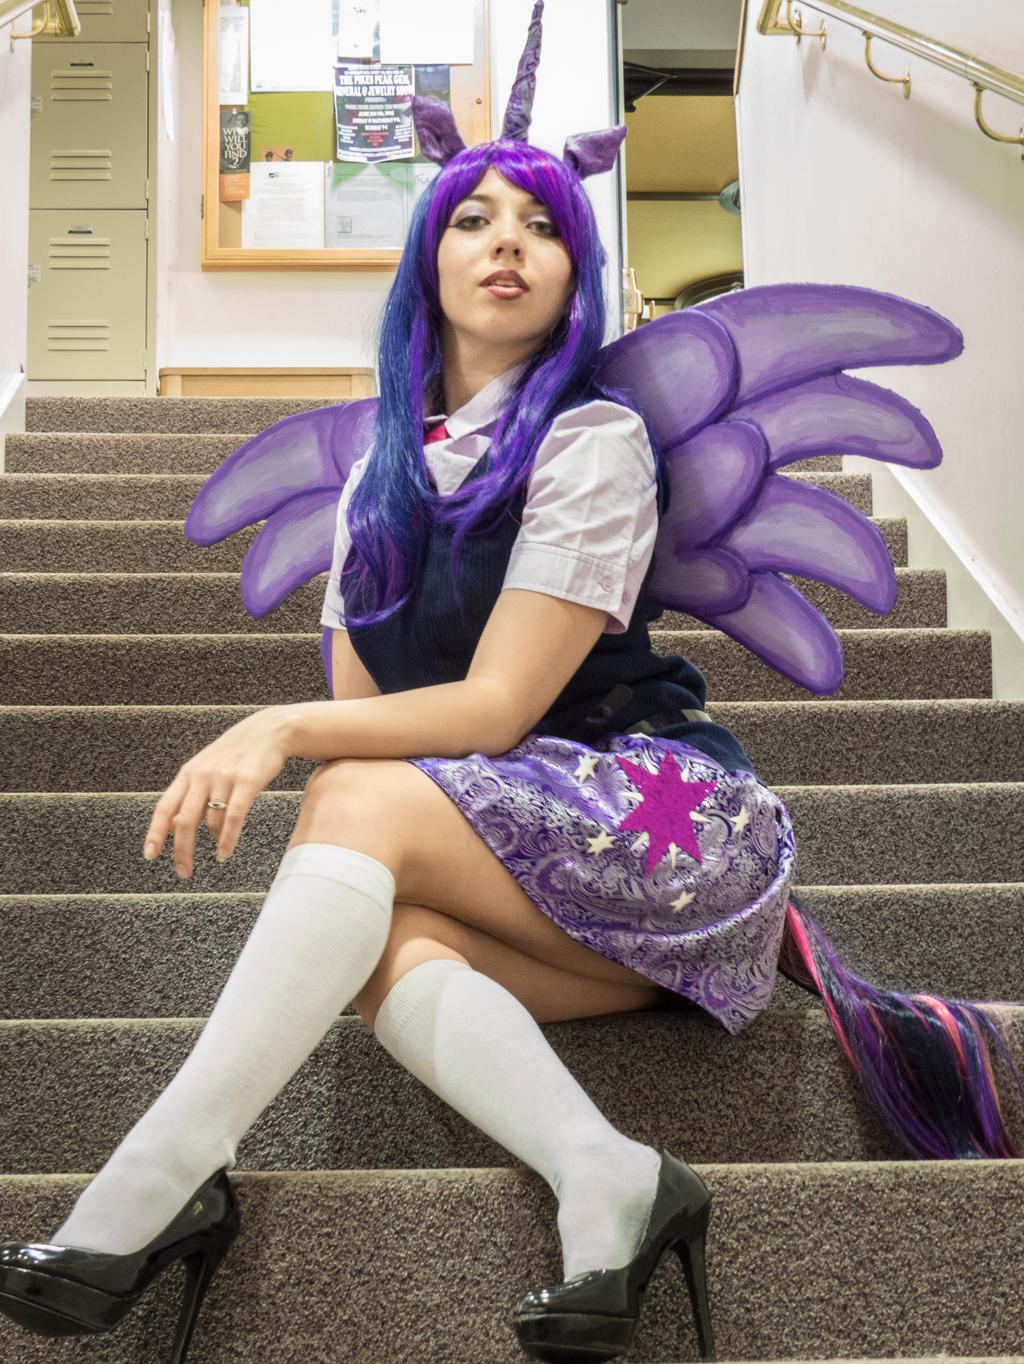 Twilight sparkle mlp cosplay upskirt